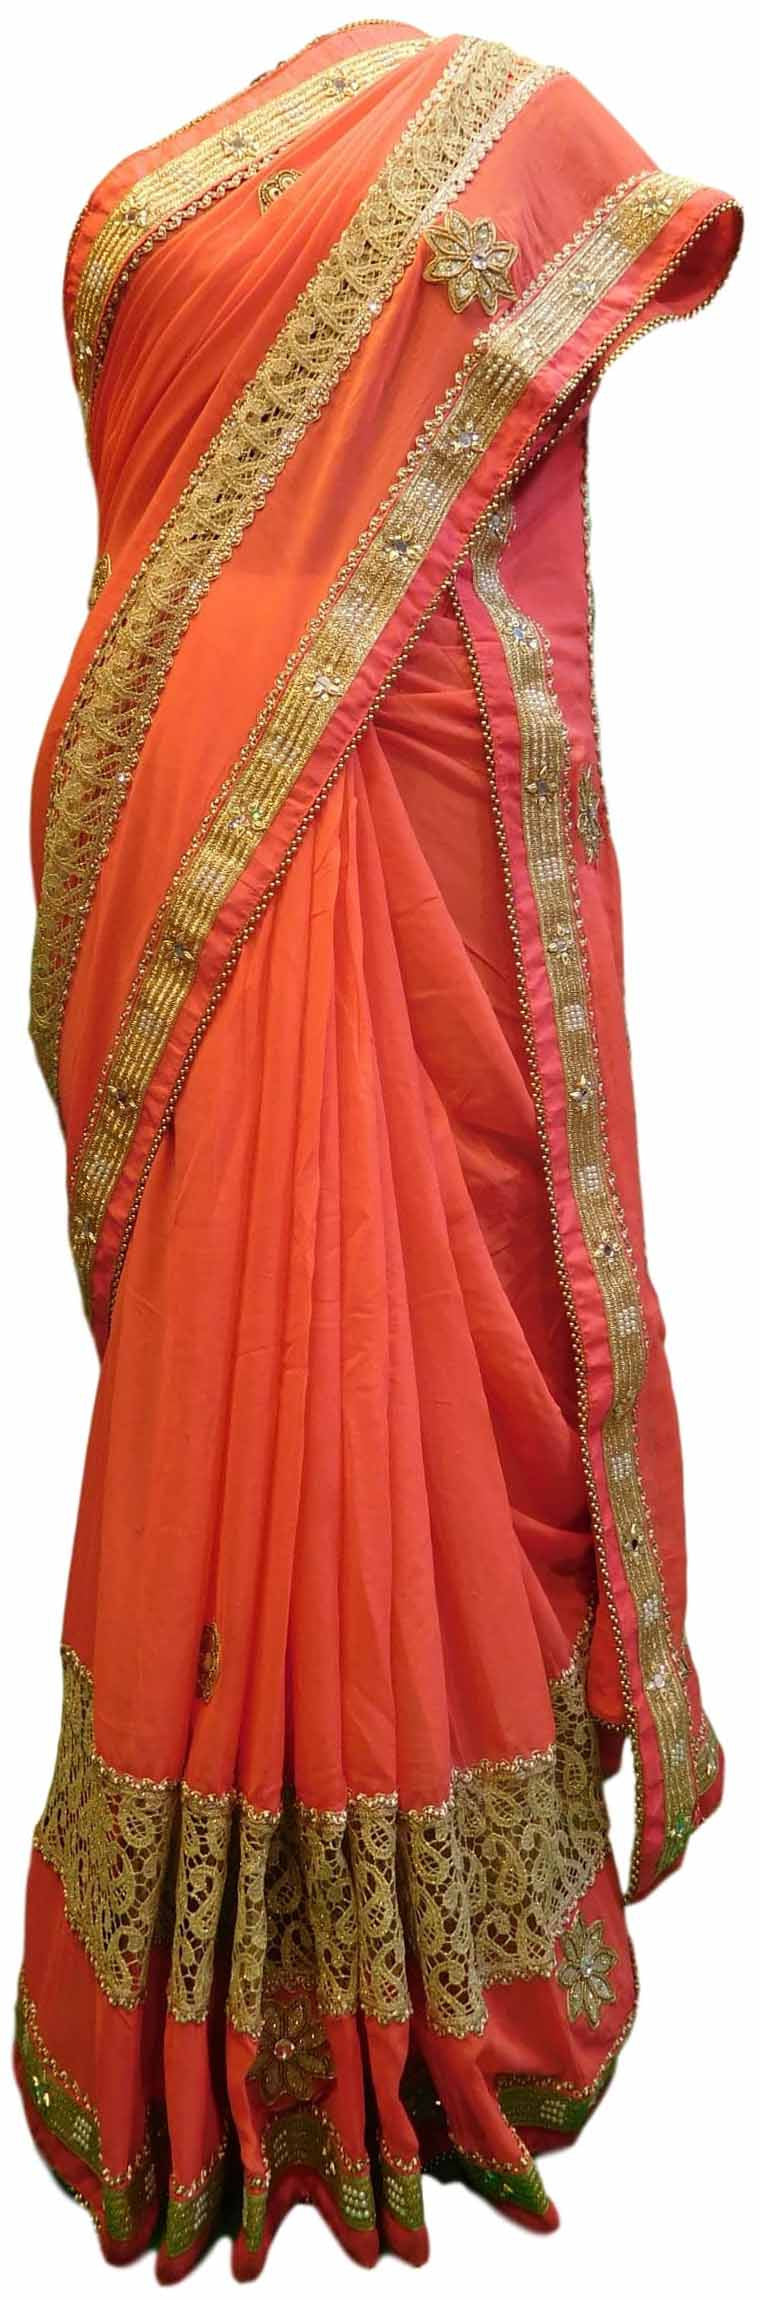 Pink Designer Georgette Sari Zari, Pearl Mirror Thread Embroidery Work Saree